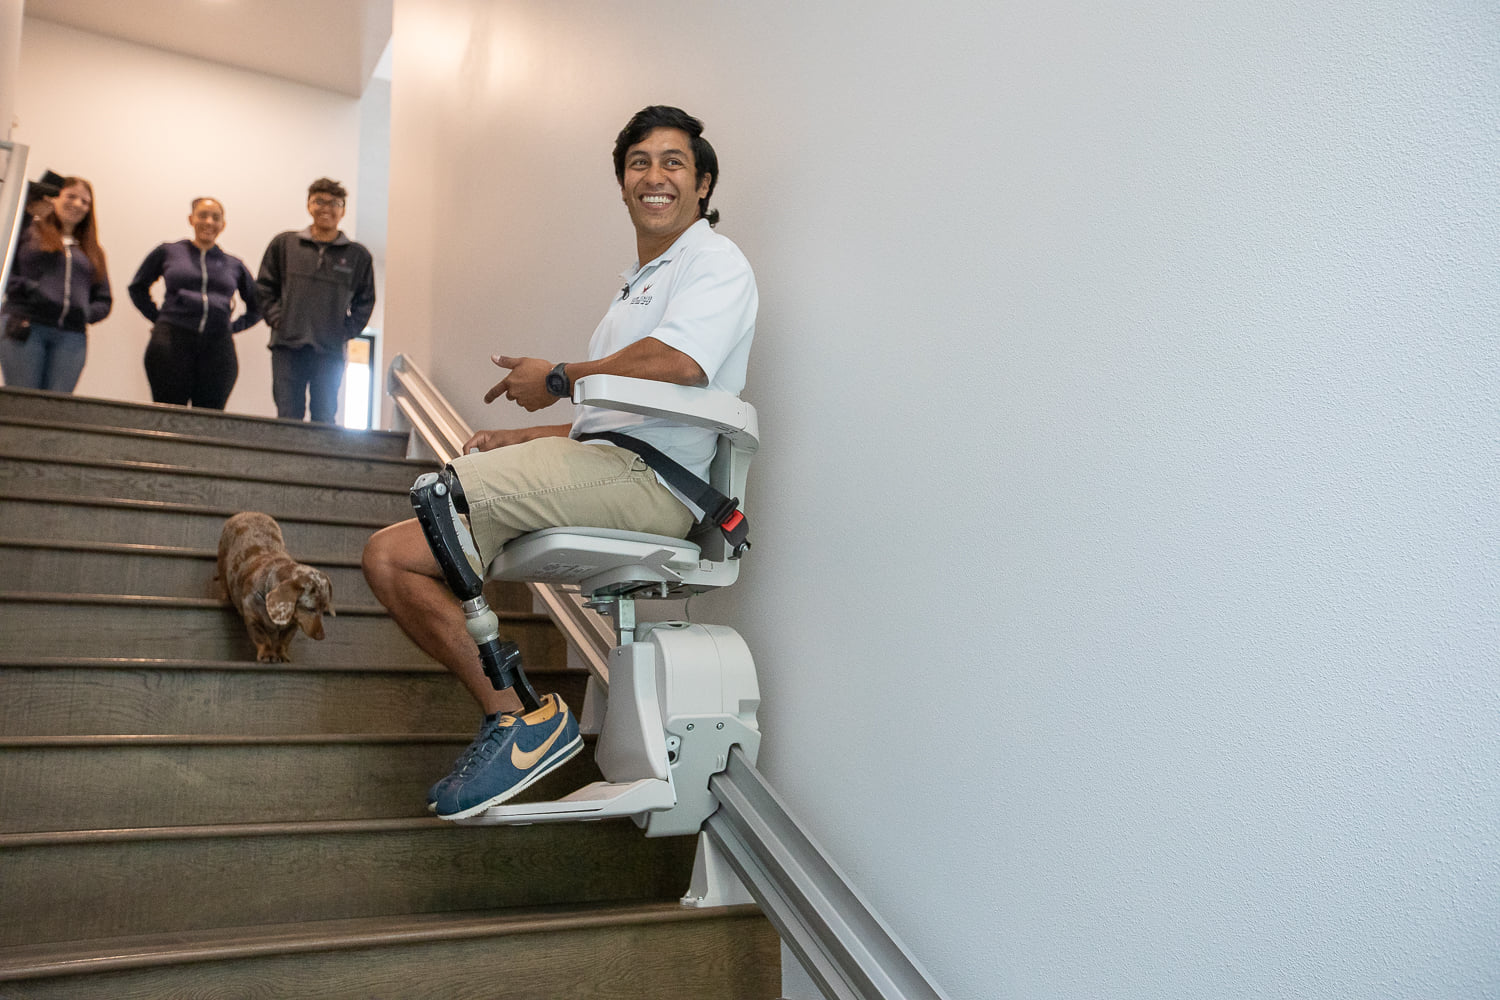 rico on stair lift